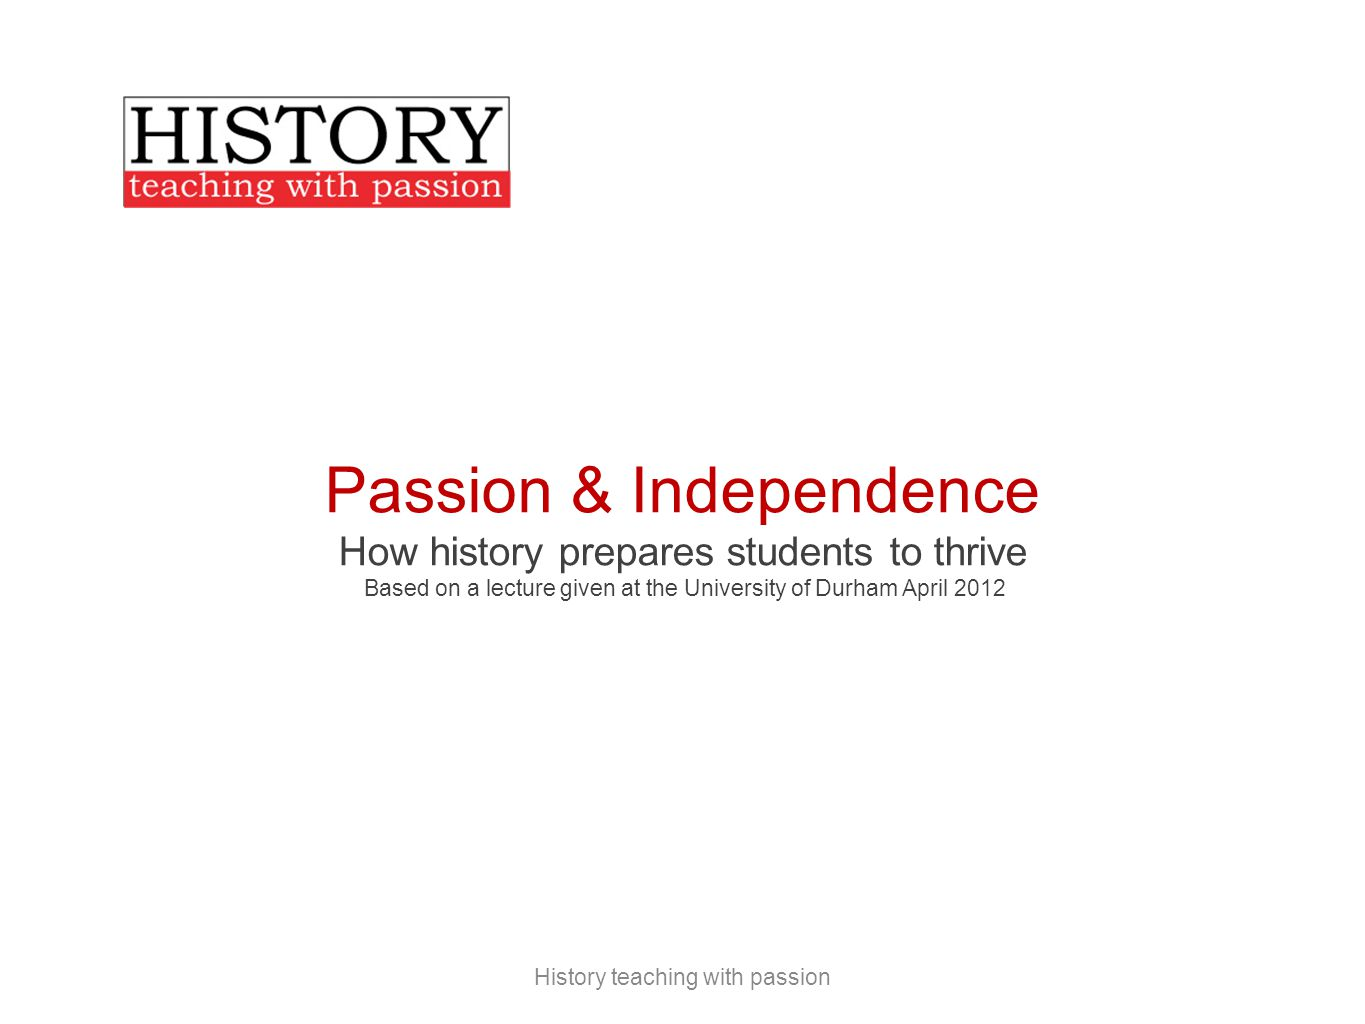 Passion & Independence How history prepares students to thrive Based on a lecture given at the University of Durham April 2012 History teaching with passion